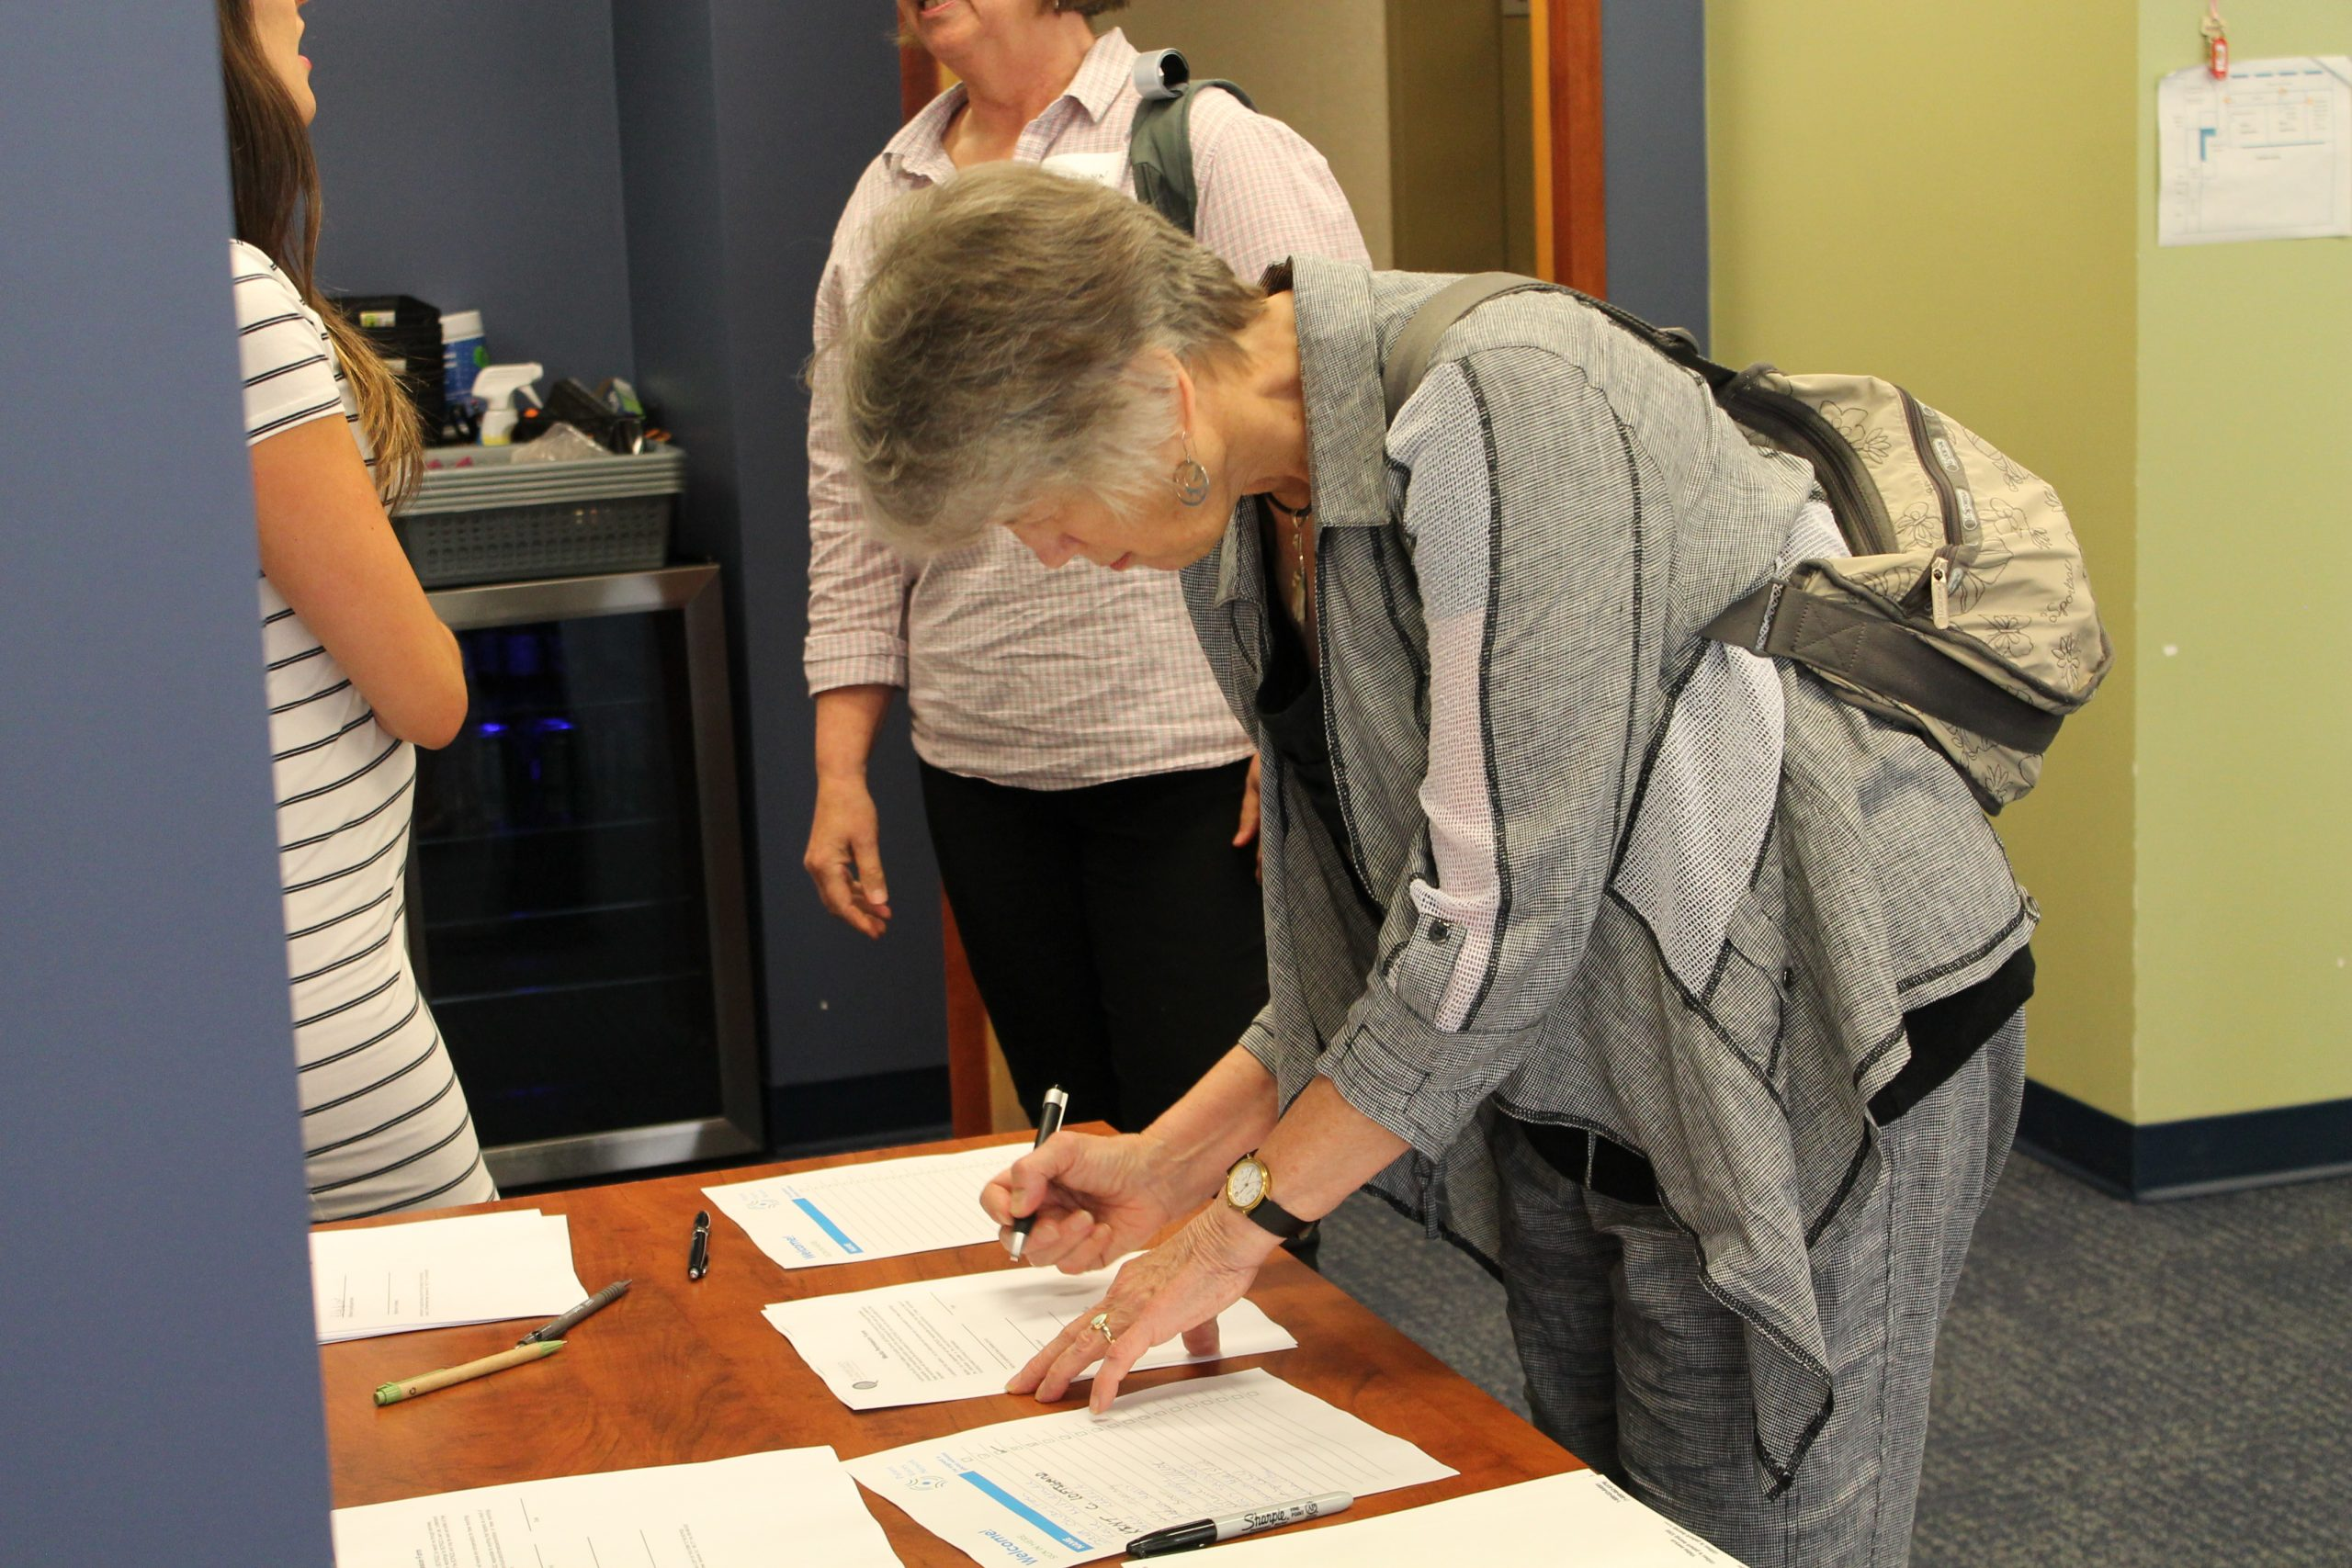 A woman writes on a piece of paper at the coffee networking event in Vancouver